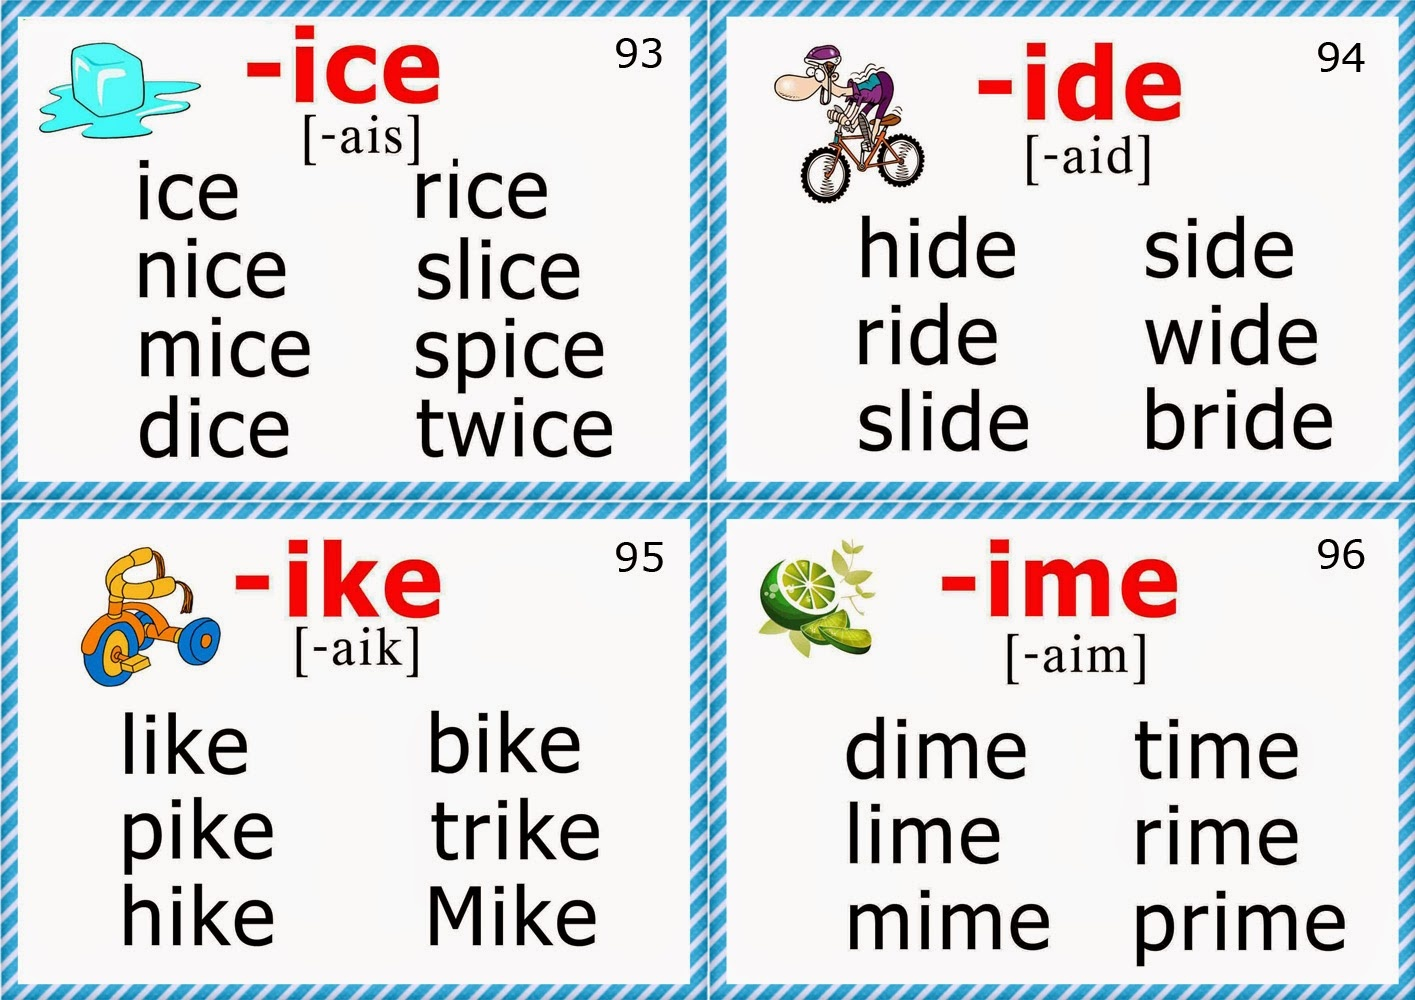 Phonics Flashcards (Long I Vowel) - Free Printable Phonics Flashcards With Pictures